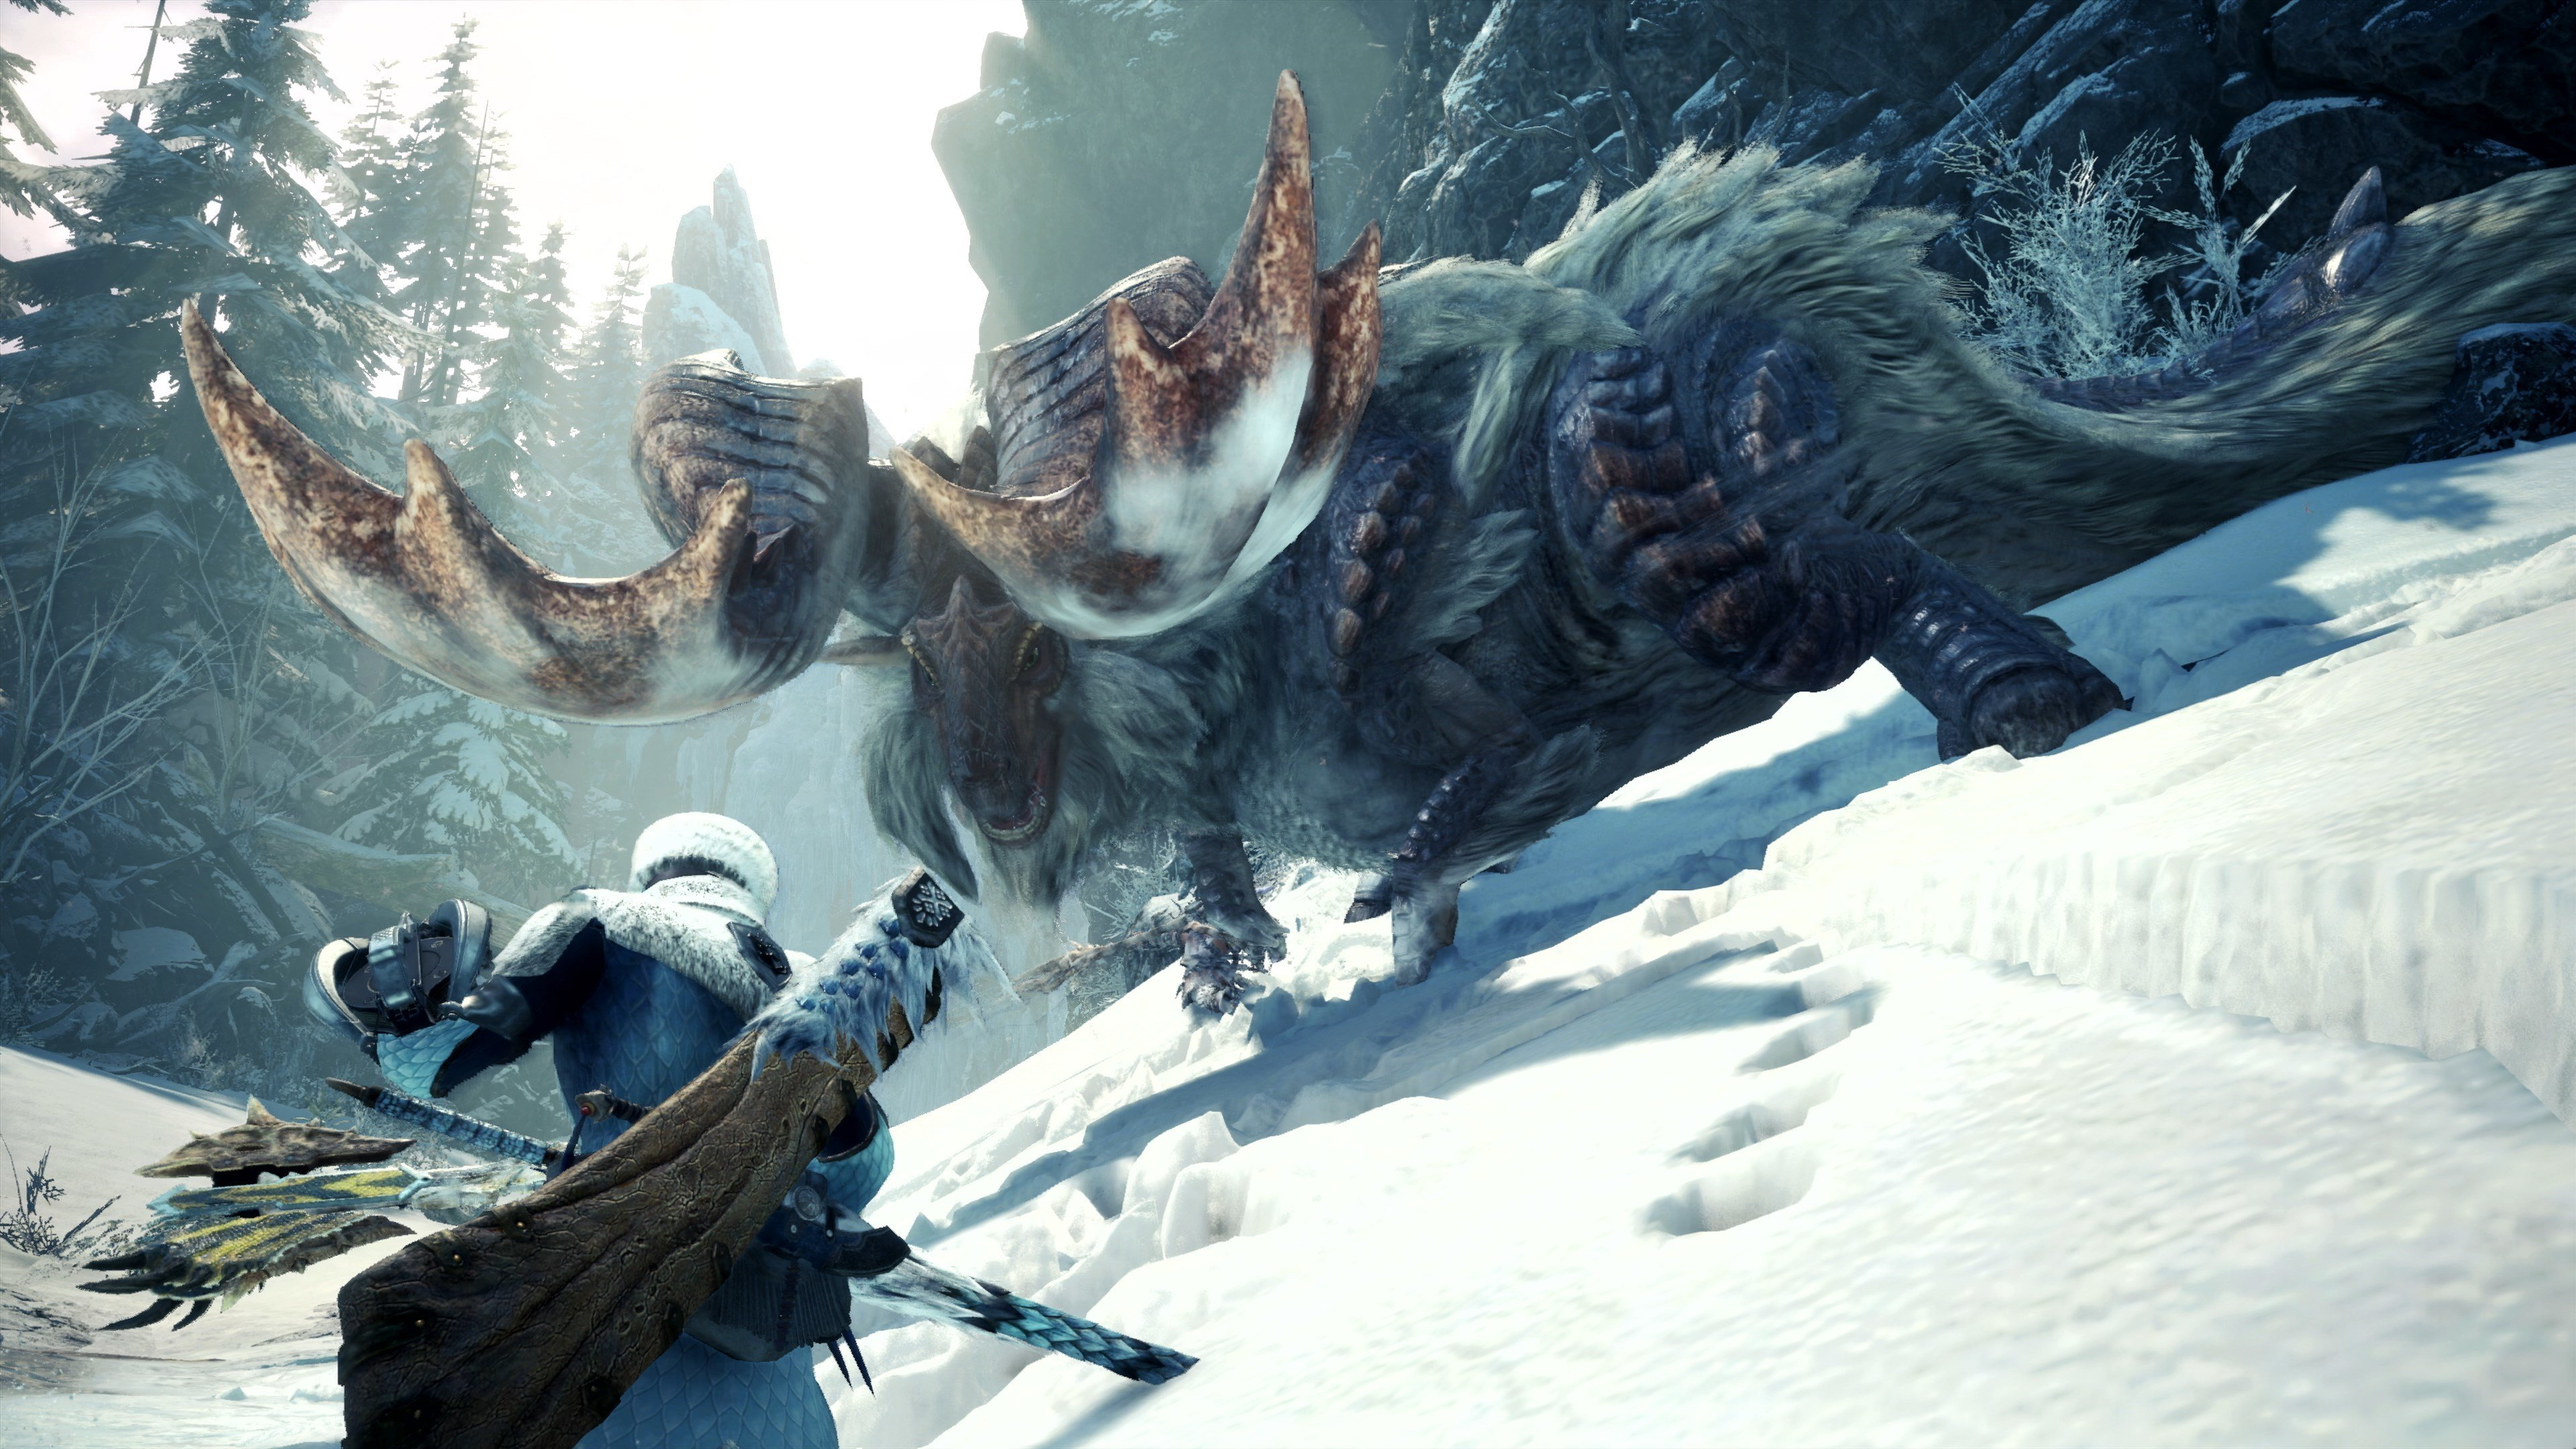 What did you think of the Monster Hunter World: Iceborne beta?